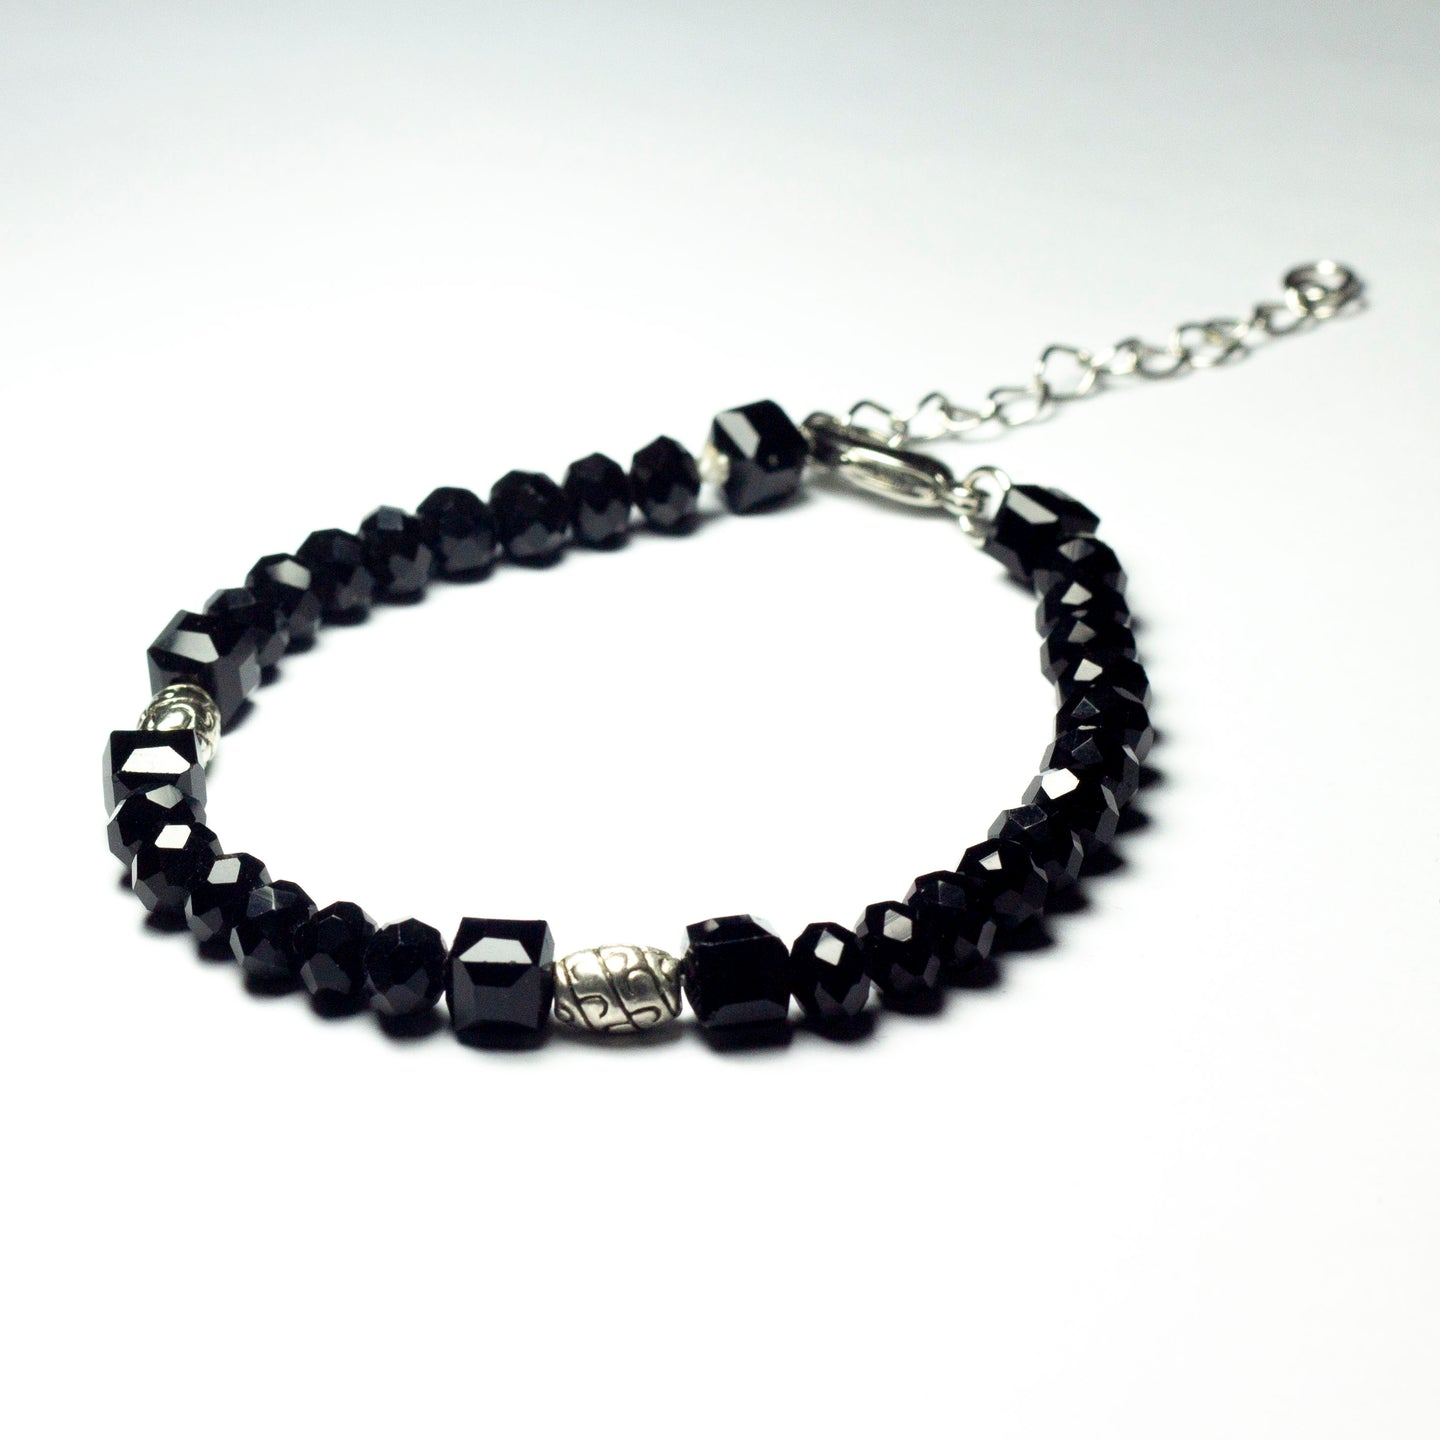 Black beaded bracelet made of black crystal beads featuring engraved cylinder pendants and a chain clasp design